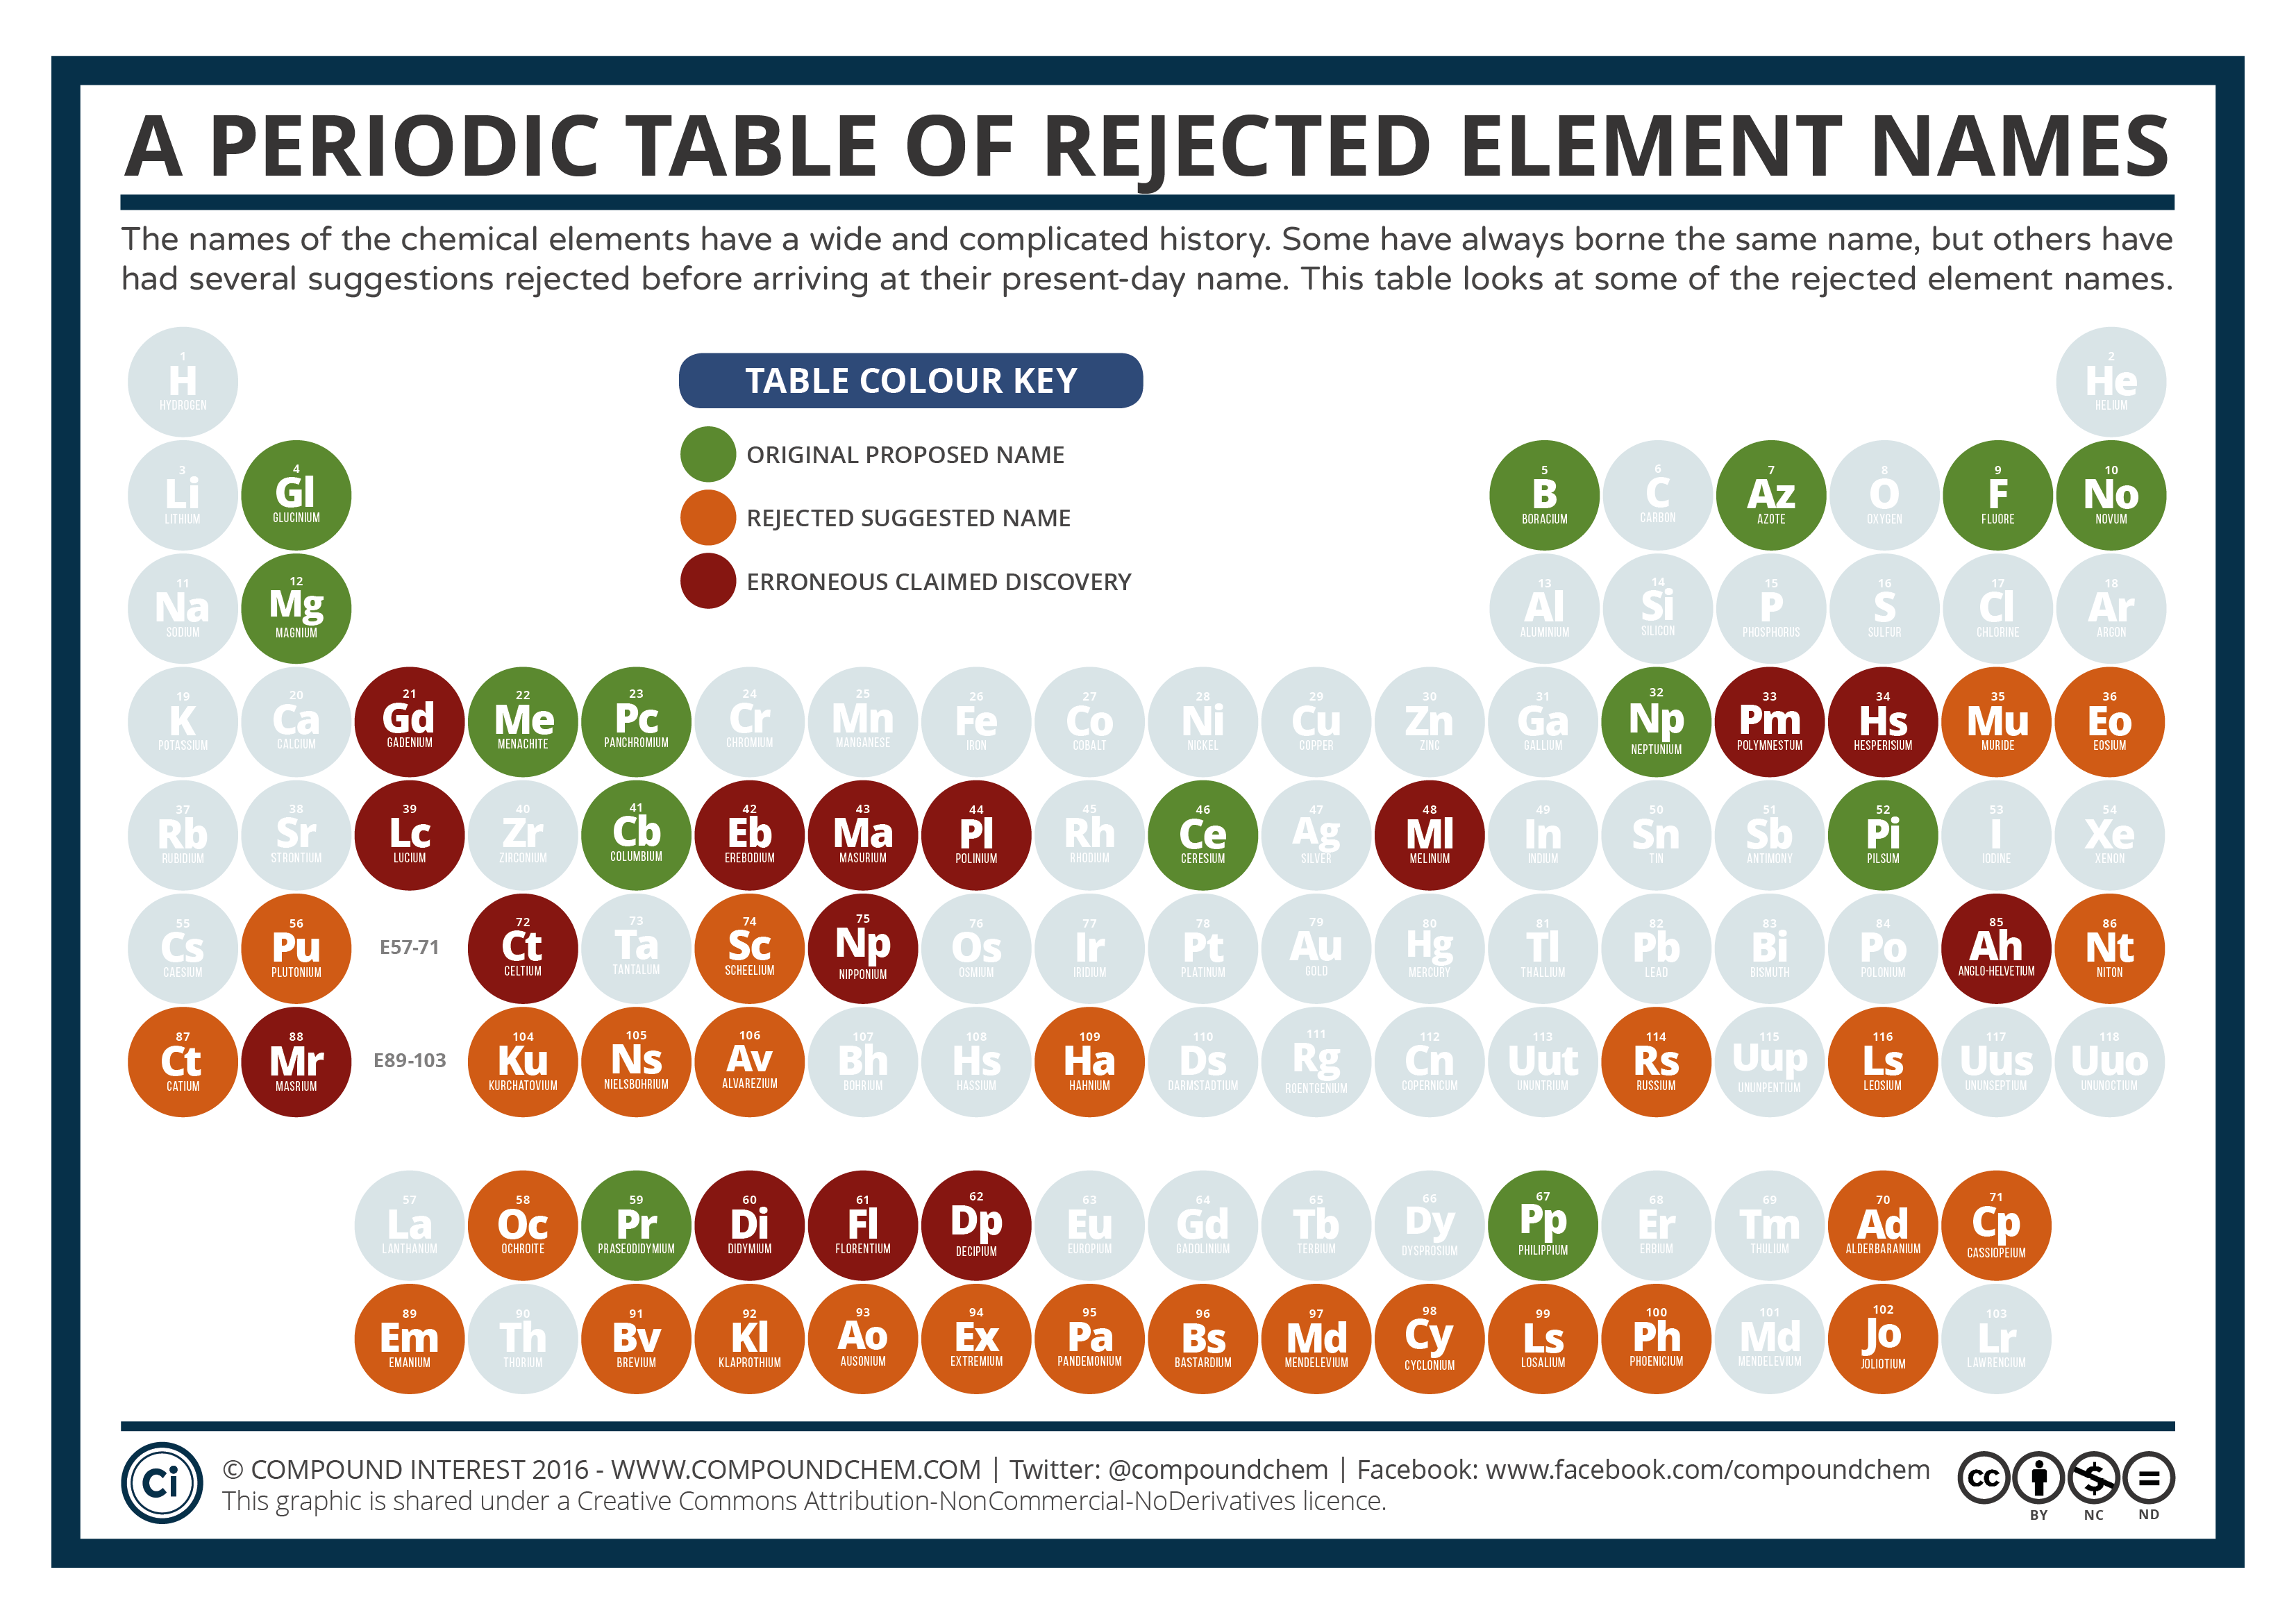 Compound interest a periodic table of rejected element names a periodic table of rejected element names urtaz